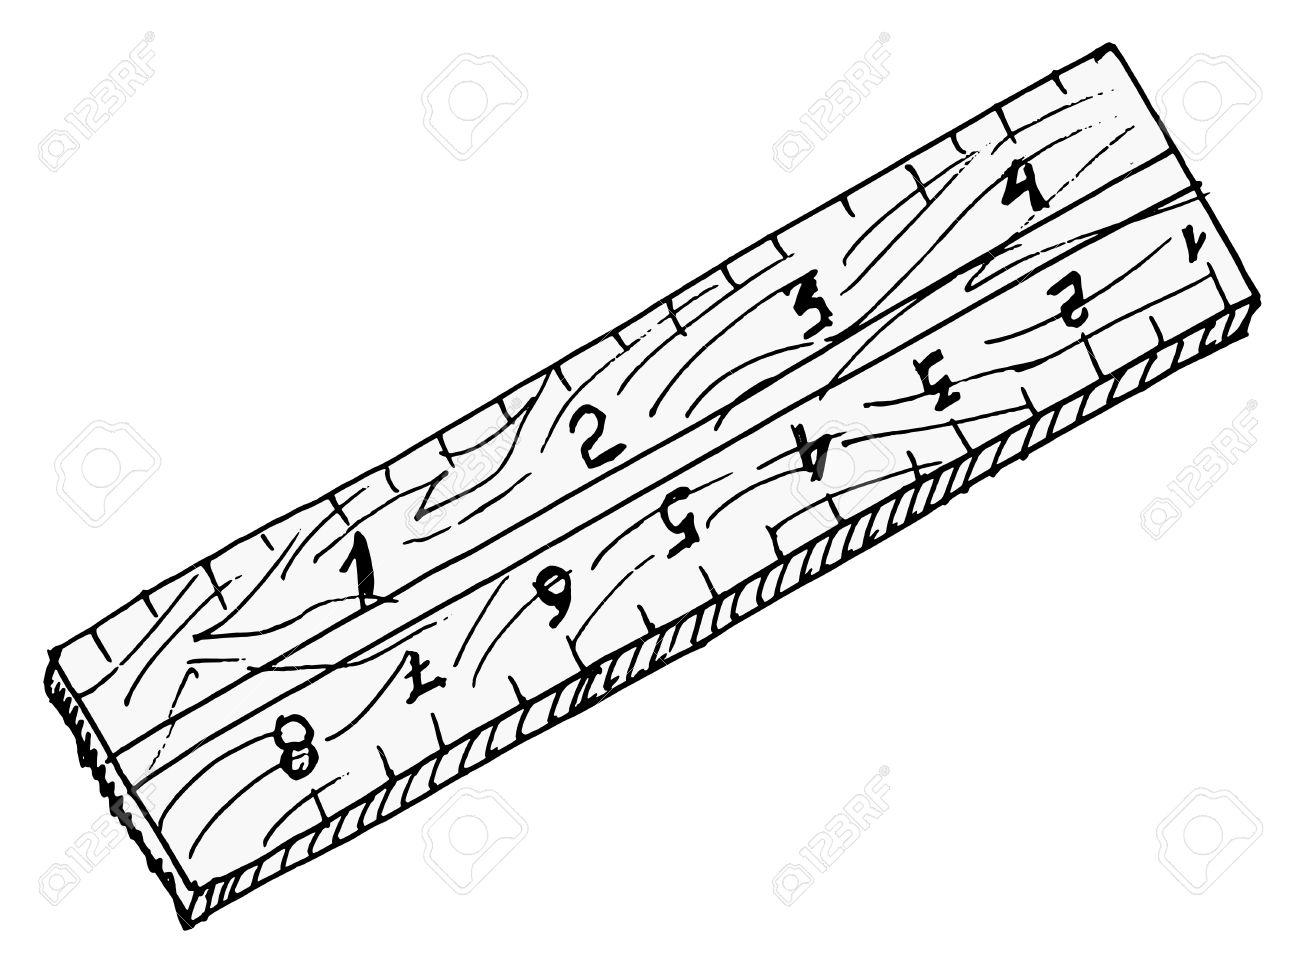 1300x974 Hand Drawn, Vector, Sketch Illustration Of Wooden Ruler Royalty